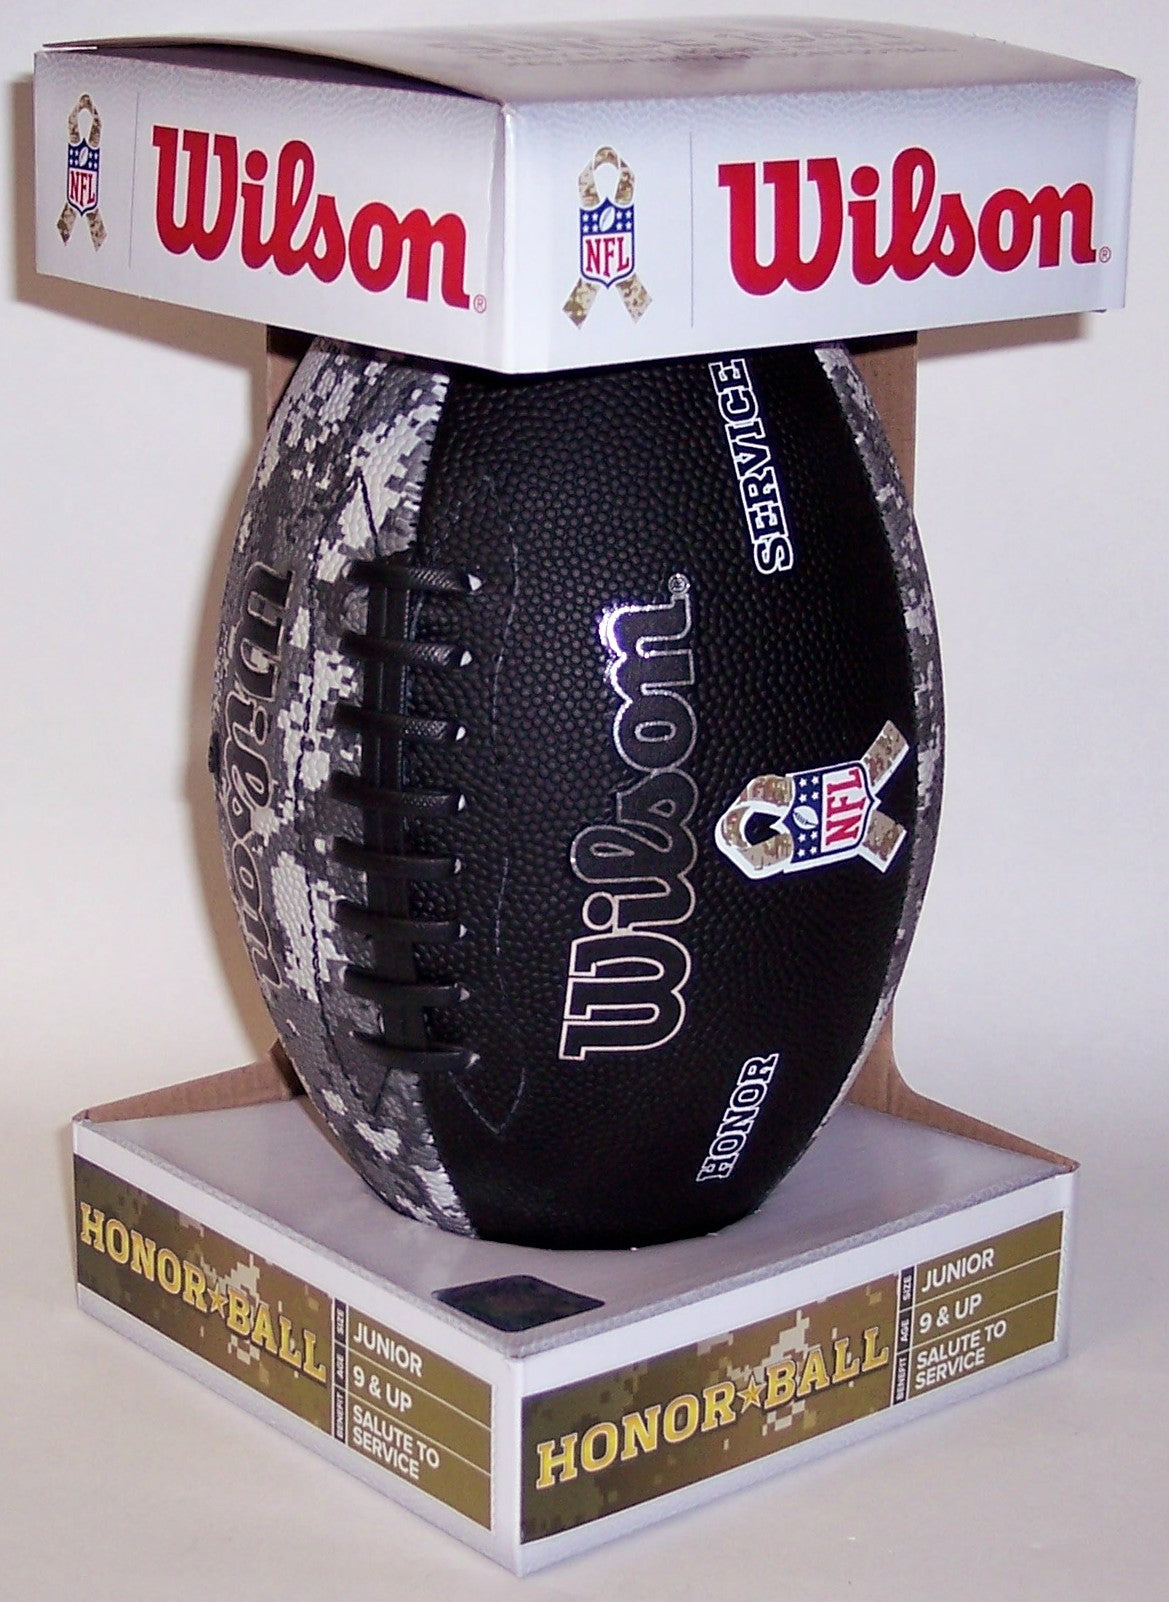 Wilson Camo Honor Salute to Service Junior NFL Football - F1588 PSM-Powers Sports Memorabilia